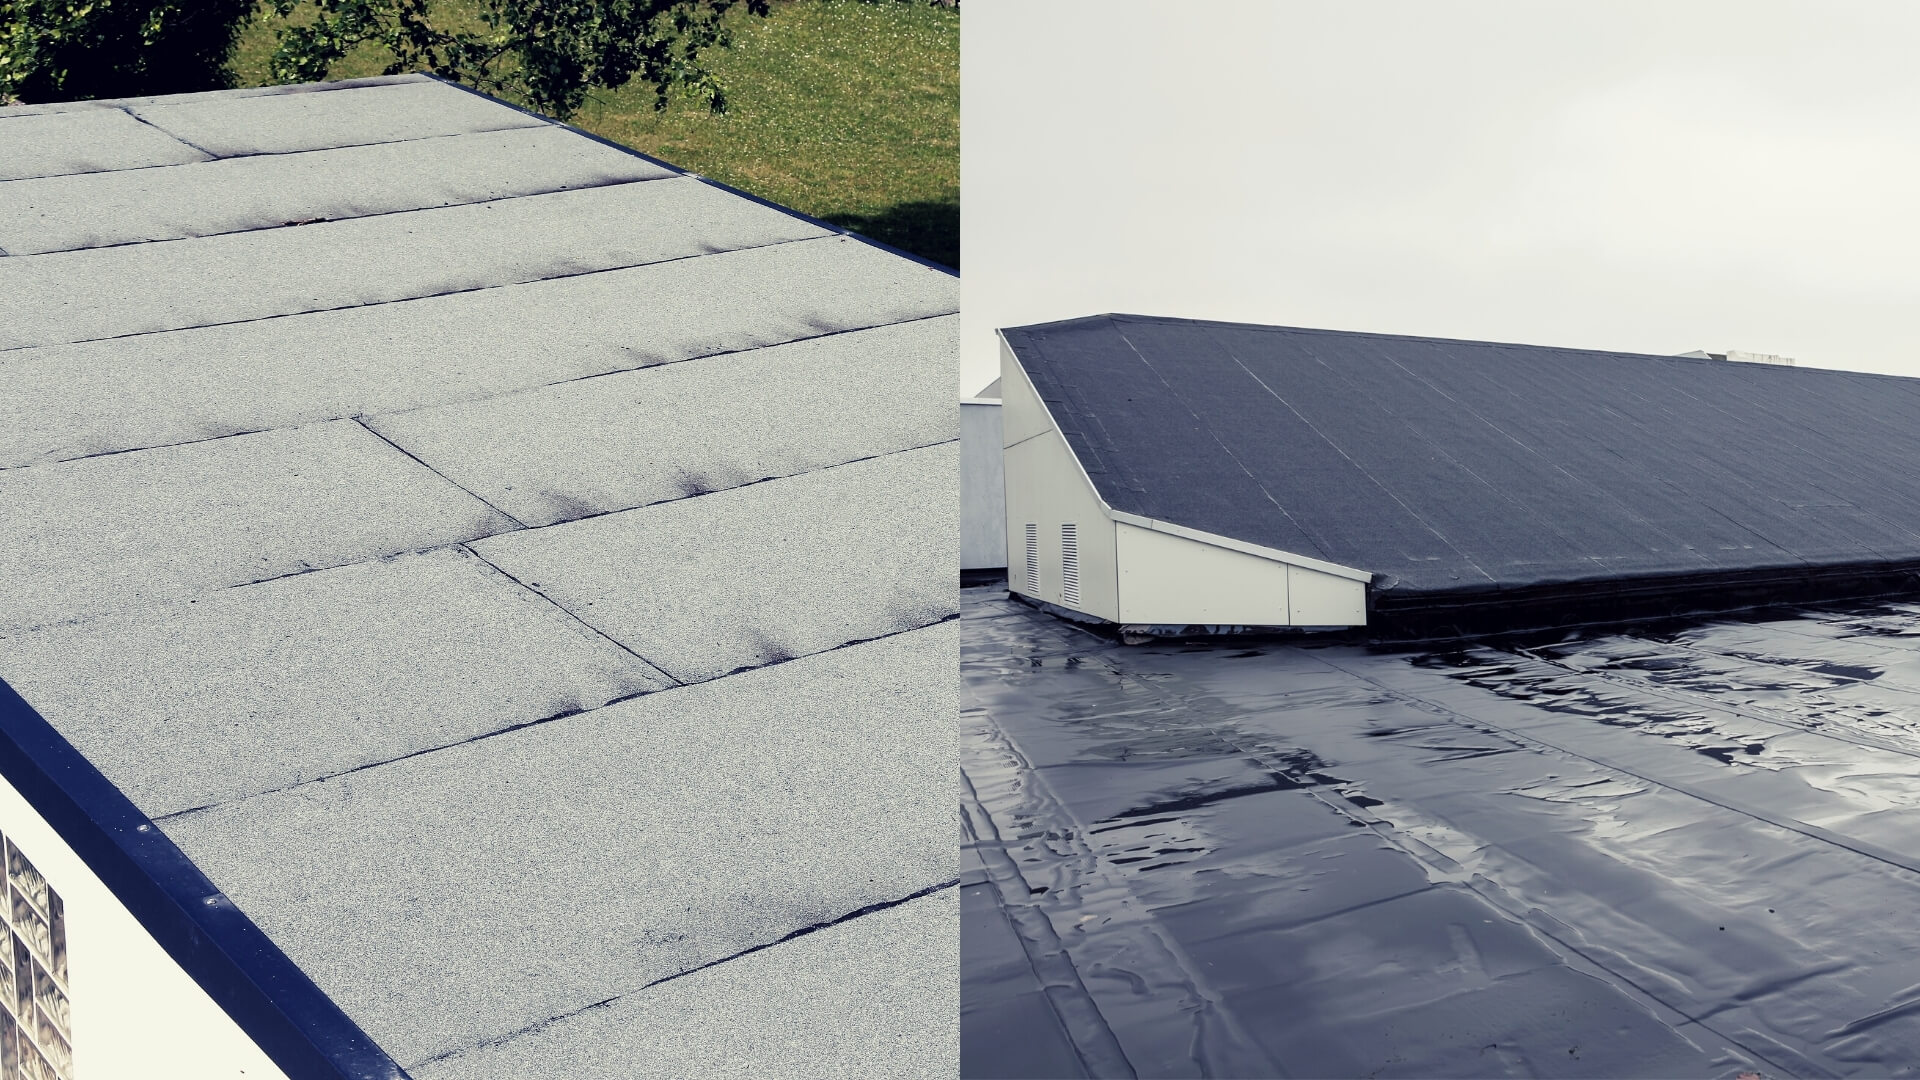 Flat Roof vs Sloped Roof Image - Tectum Salinas Roofing